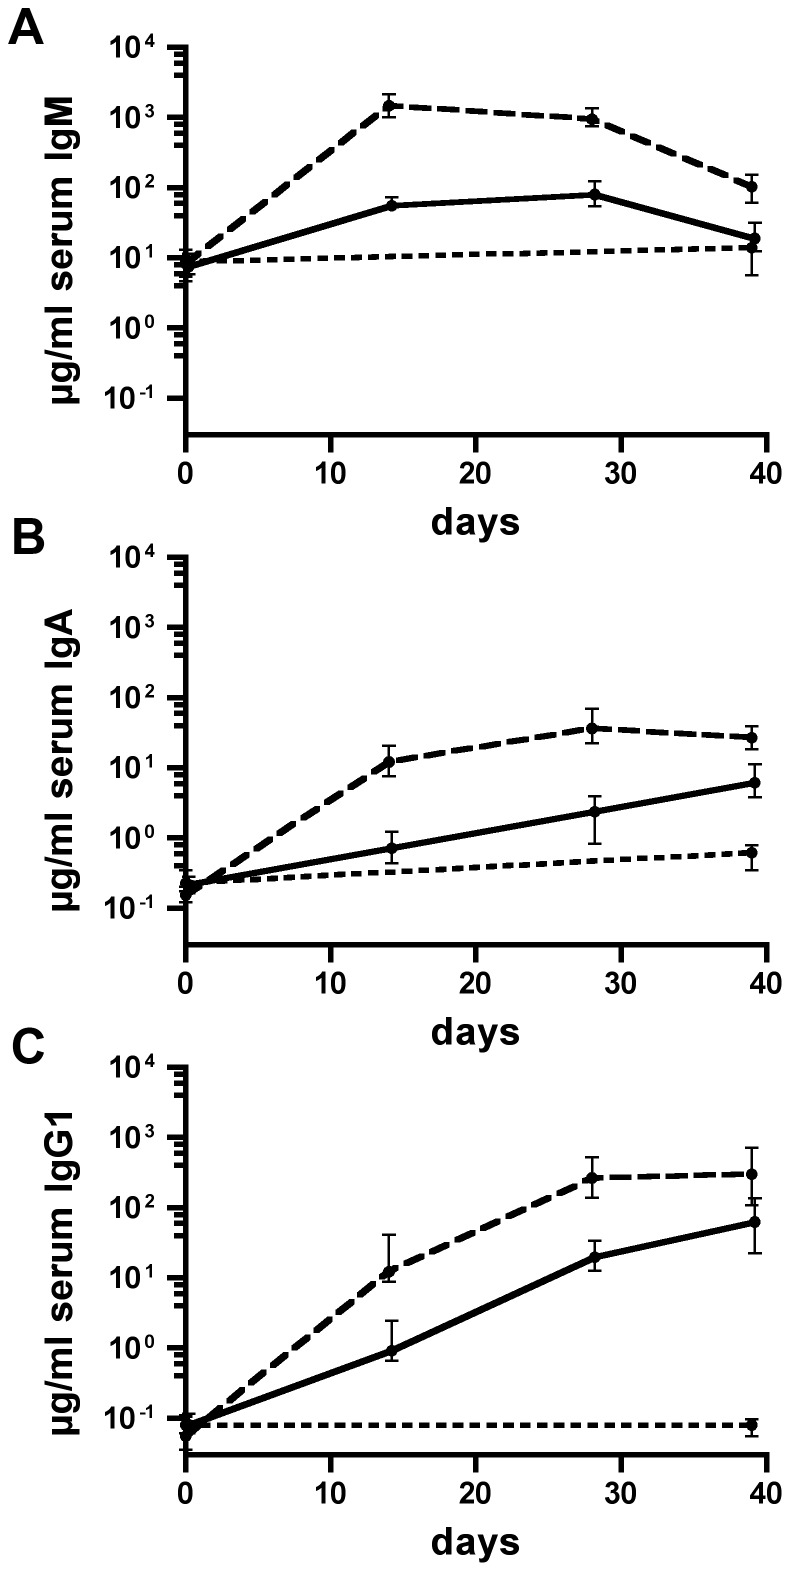 Temporal immune responses to OMVs derived from NTHi strain 3198-R. Shown are the median titers over time of IgM (A), <t>IgA</t> (B), and IgG1 (C) antibodies to 3198-R OMVs in sera from mice intranasally immunized with either IM-1 (solid line) or IM-2 (dashed line) as well as in sera from nonvaccinated control mice (dotted line) (n = 20 for each group). The error bars indicate the interquartile range of each data set for each time point.